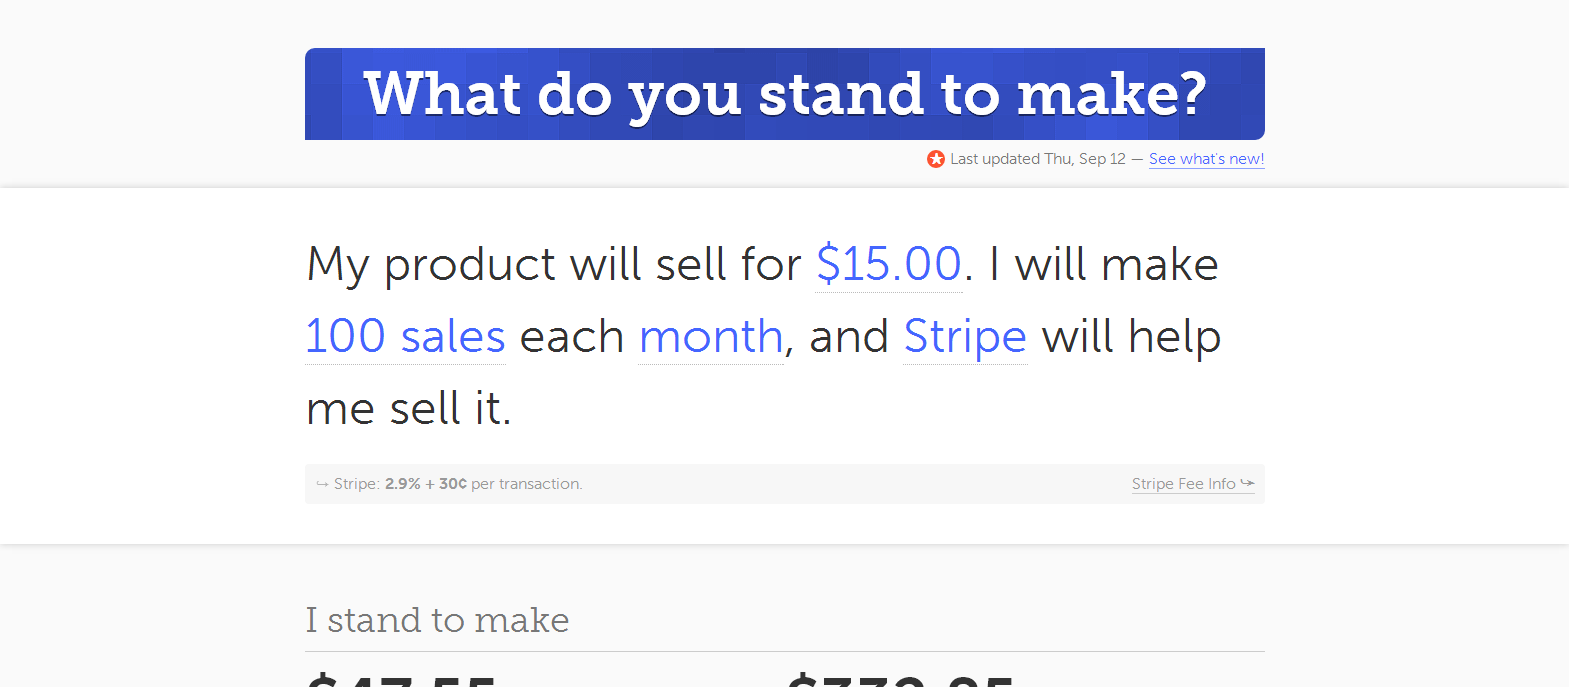 What do you stand to make